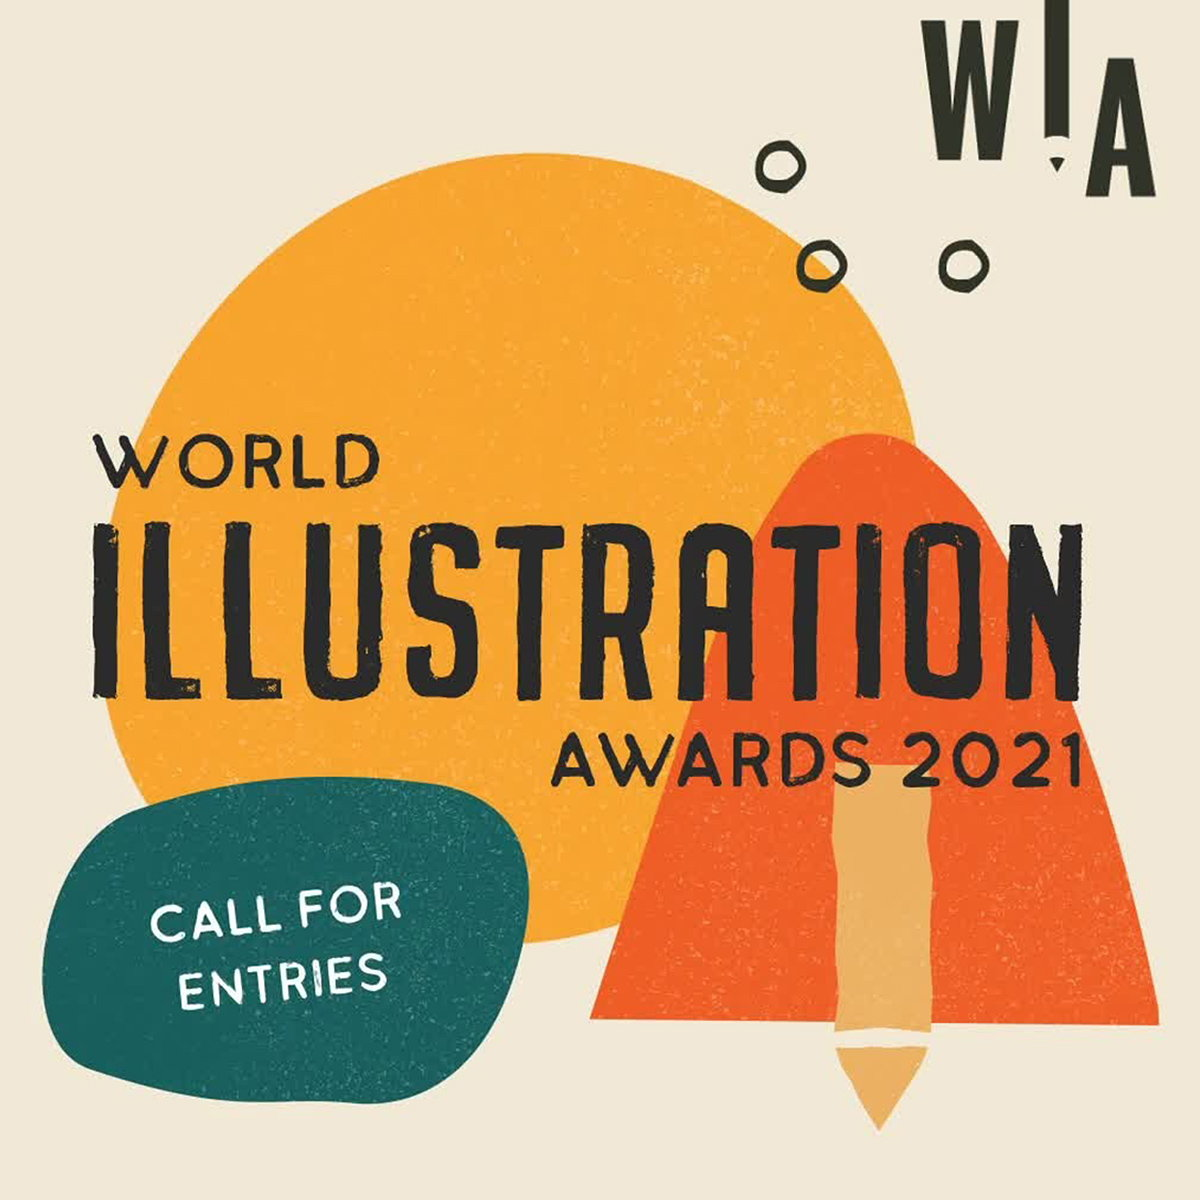 World Illustration Awards 2021